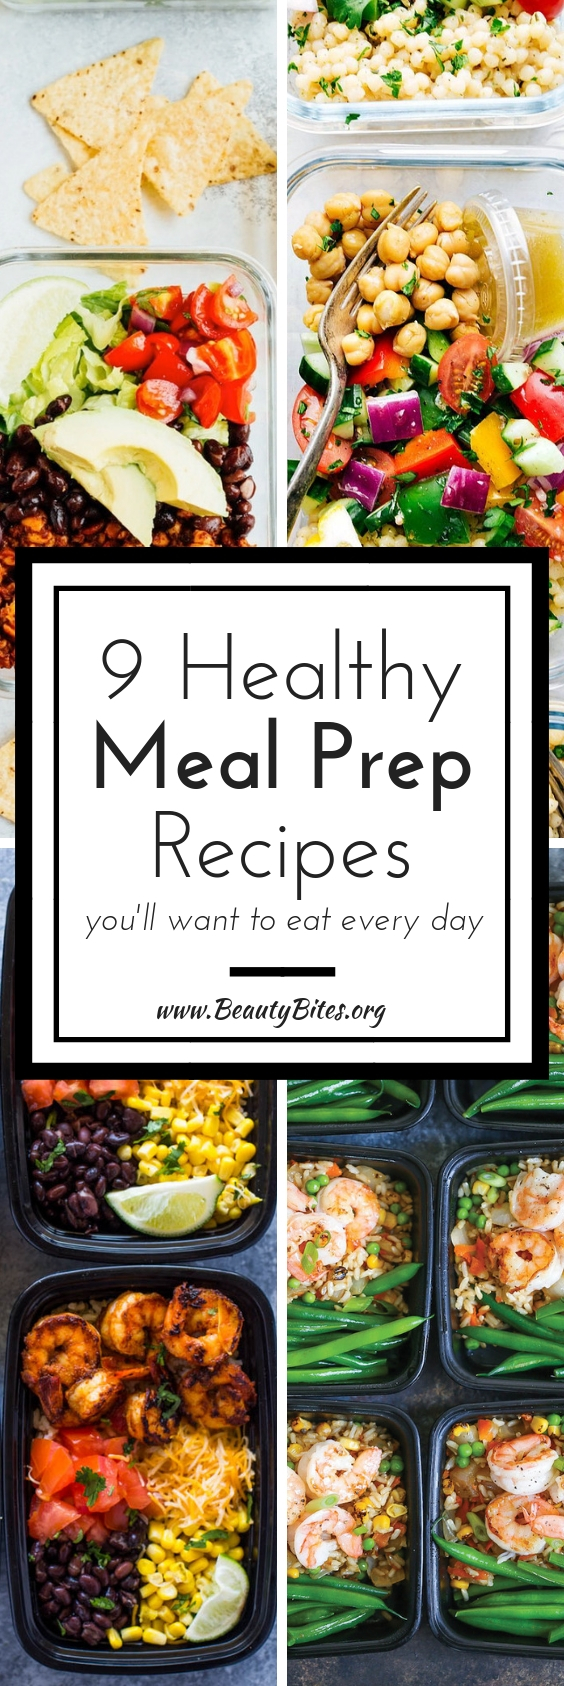 9 healthy meal prep recipes that you'll want to eat every day! These recipes don't take long and will make it easy to eat clean the whole week. | Meal Prep For The Week #mealprep